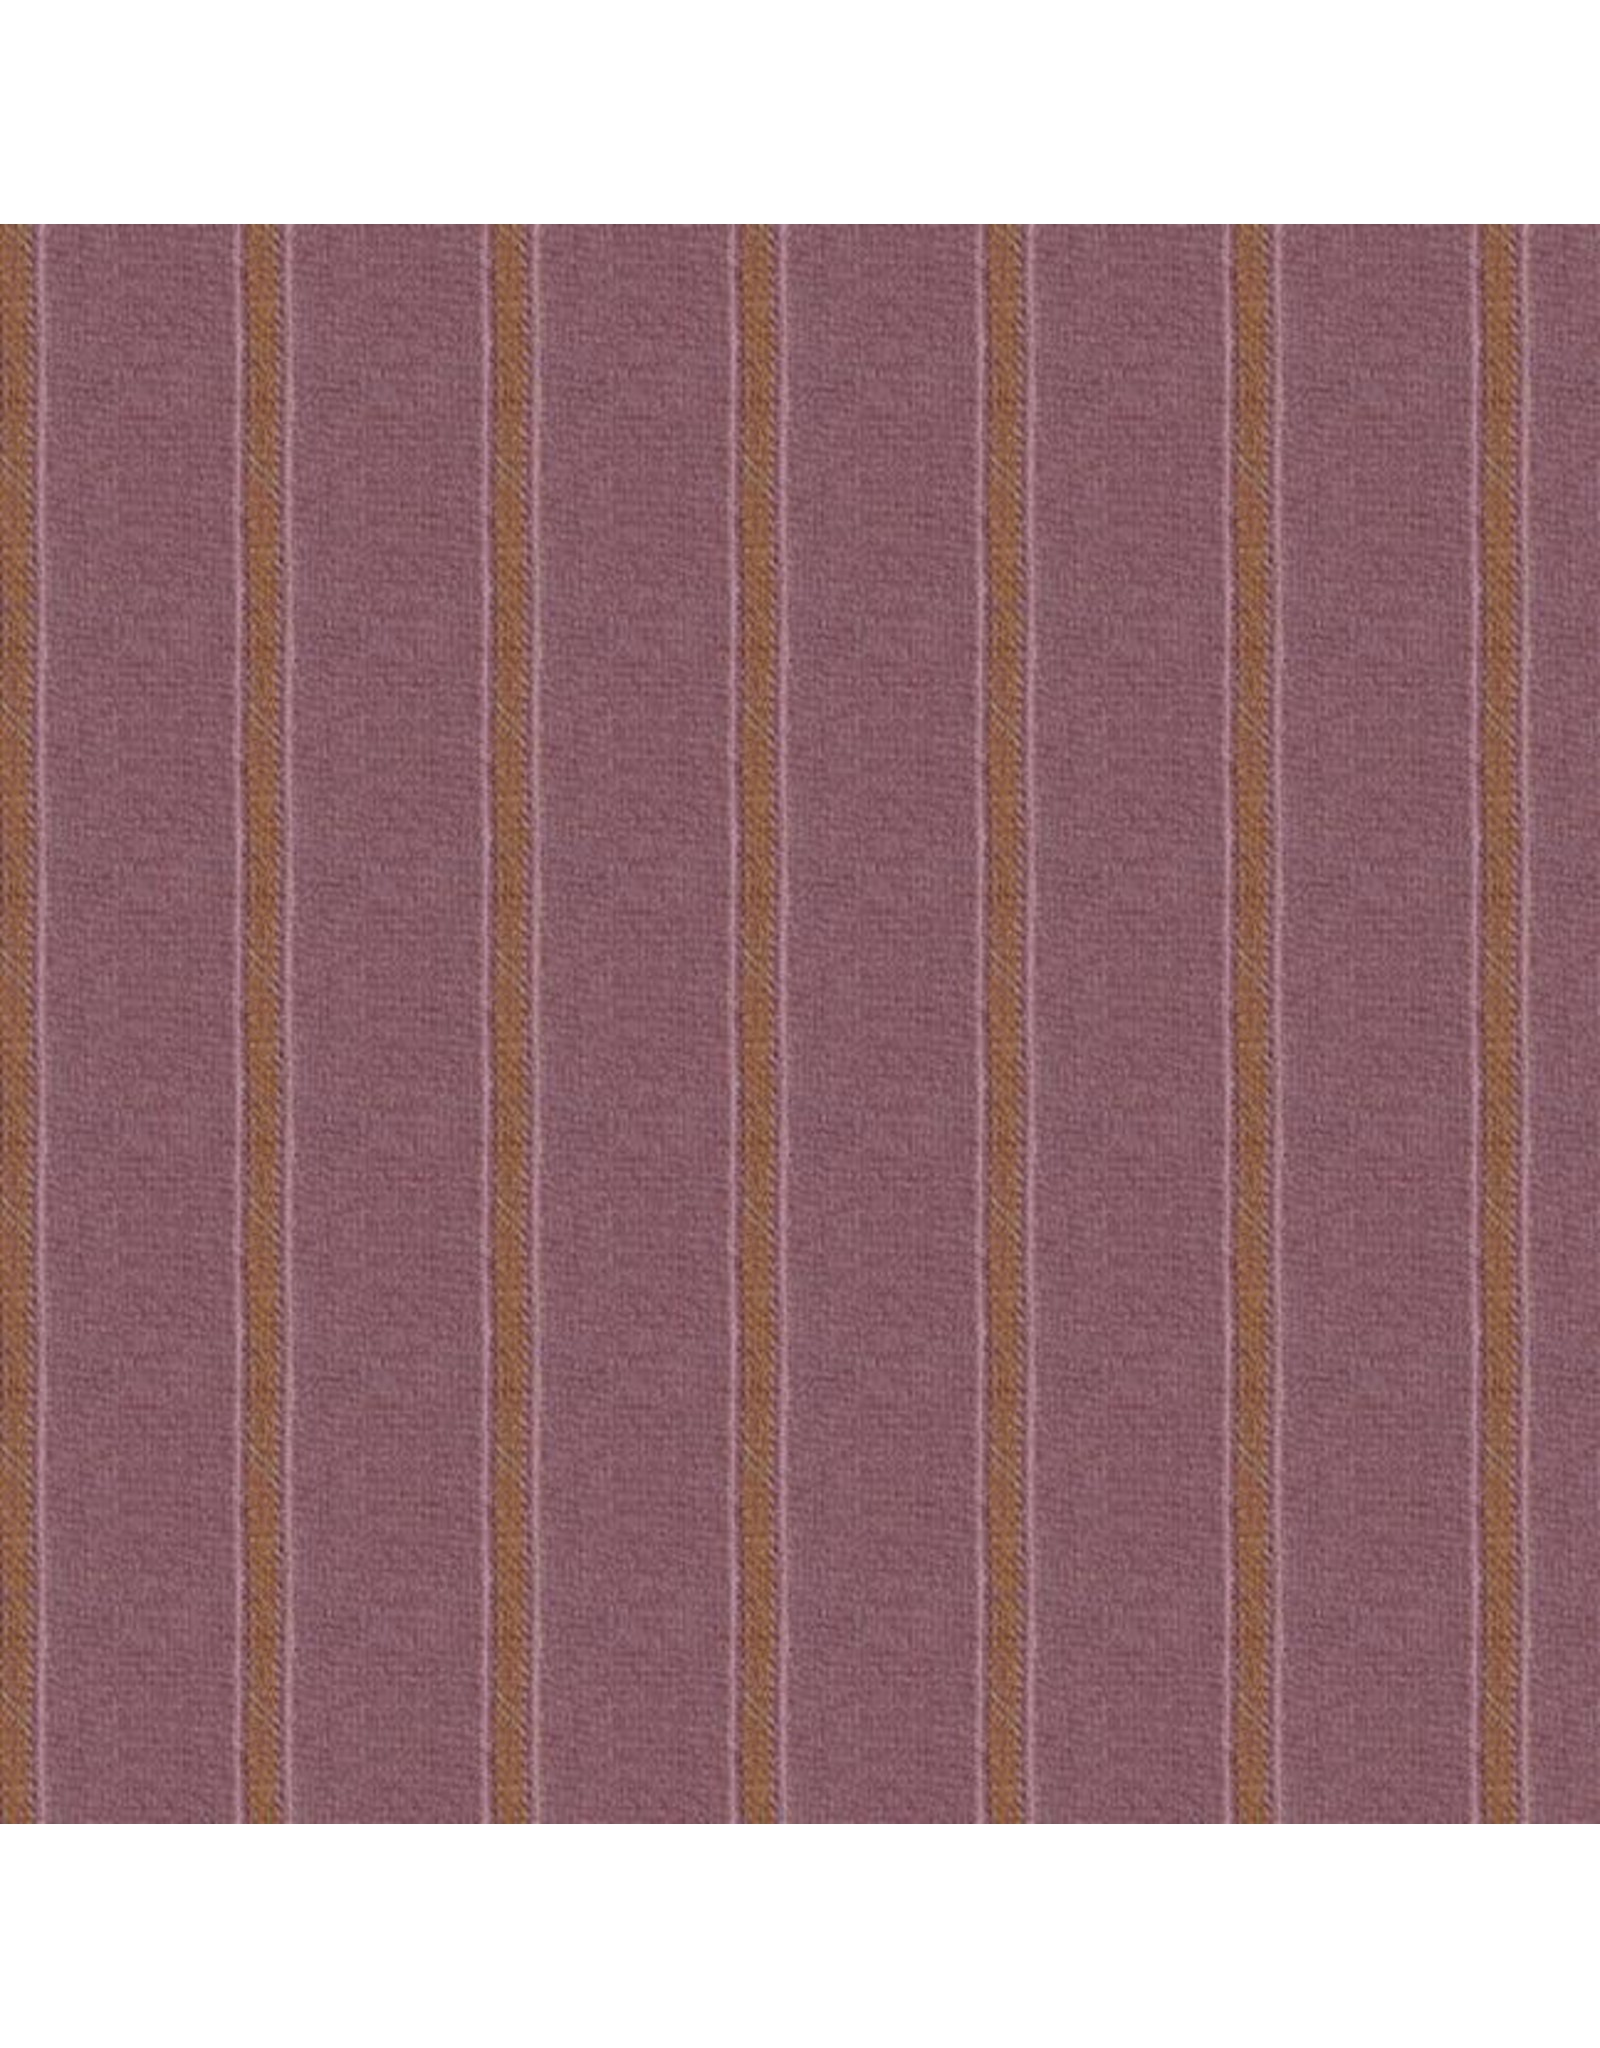 """Alexia Abegg Warp and Weft Wovens, Stitch in Lilac, Fabric Half-Yards RS4009 11 (ONE 26"""" CUT REMAINING)"""